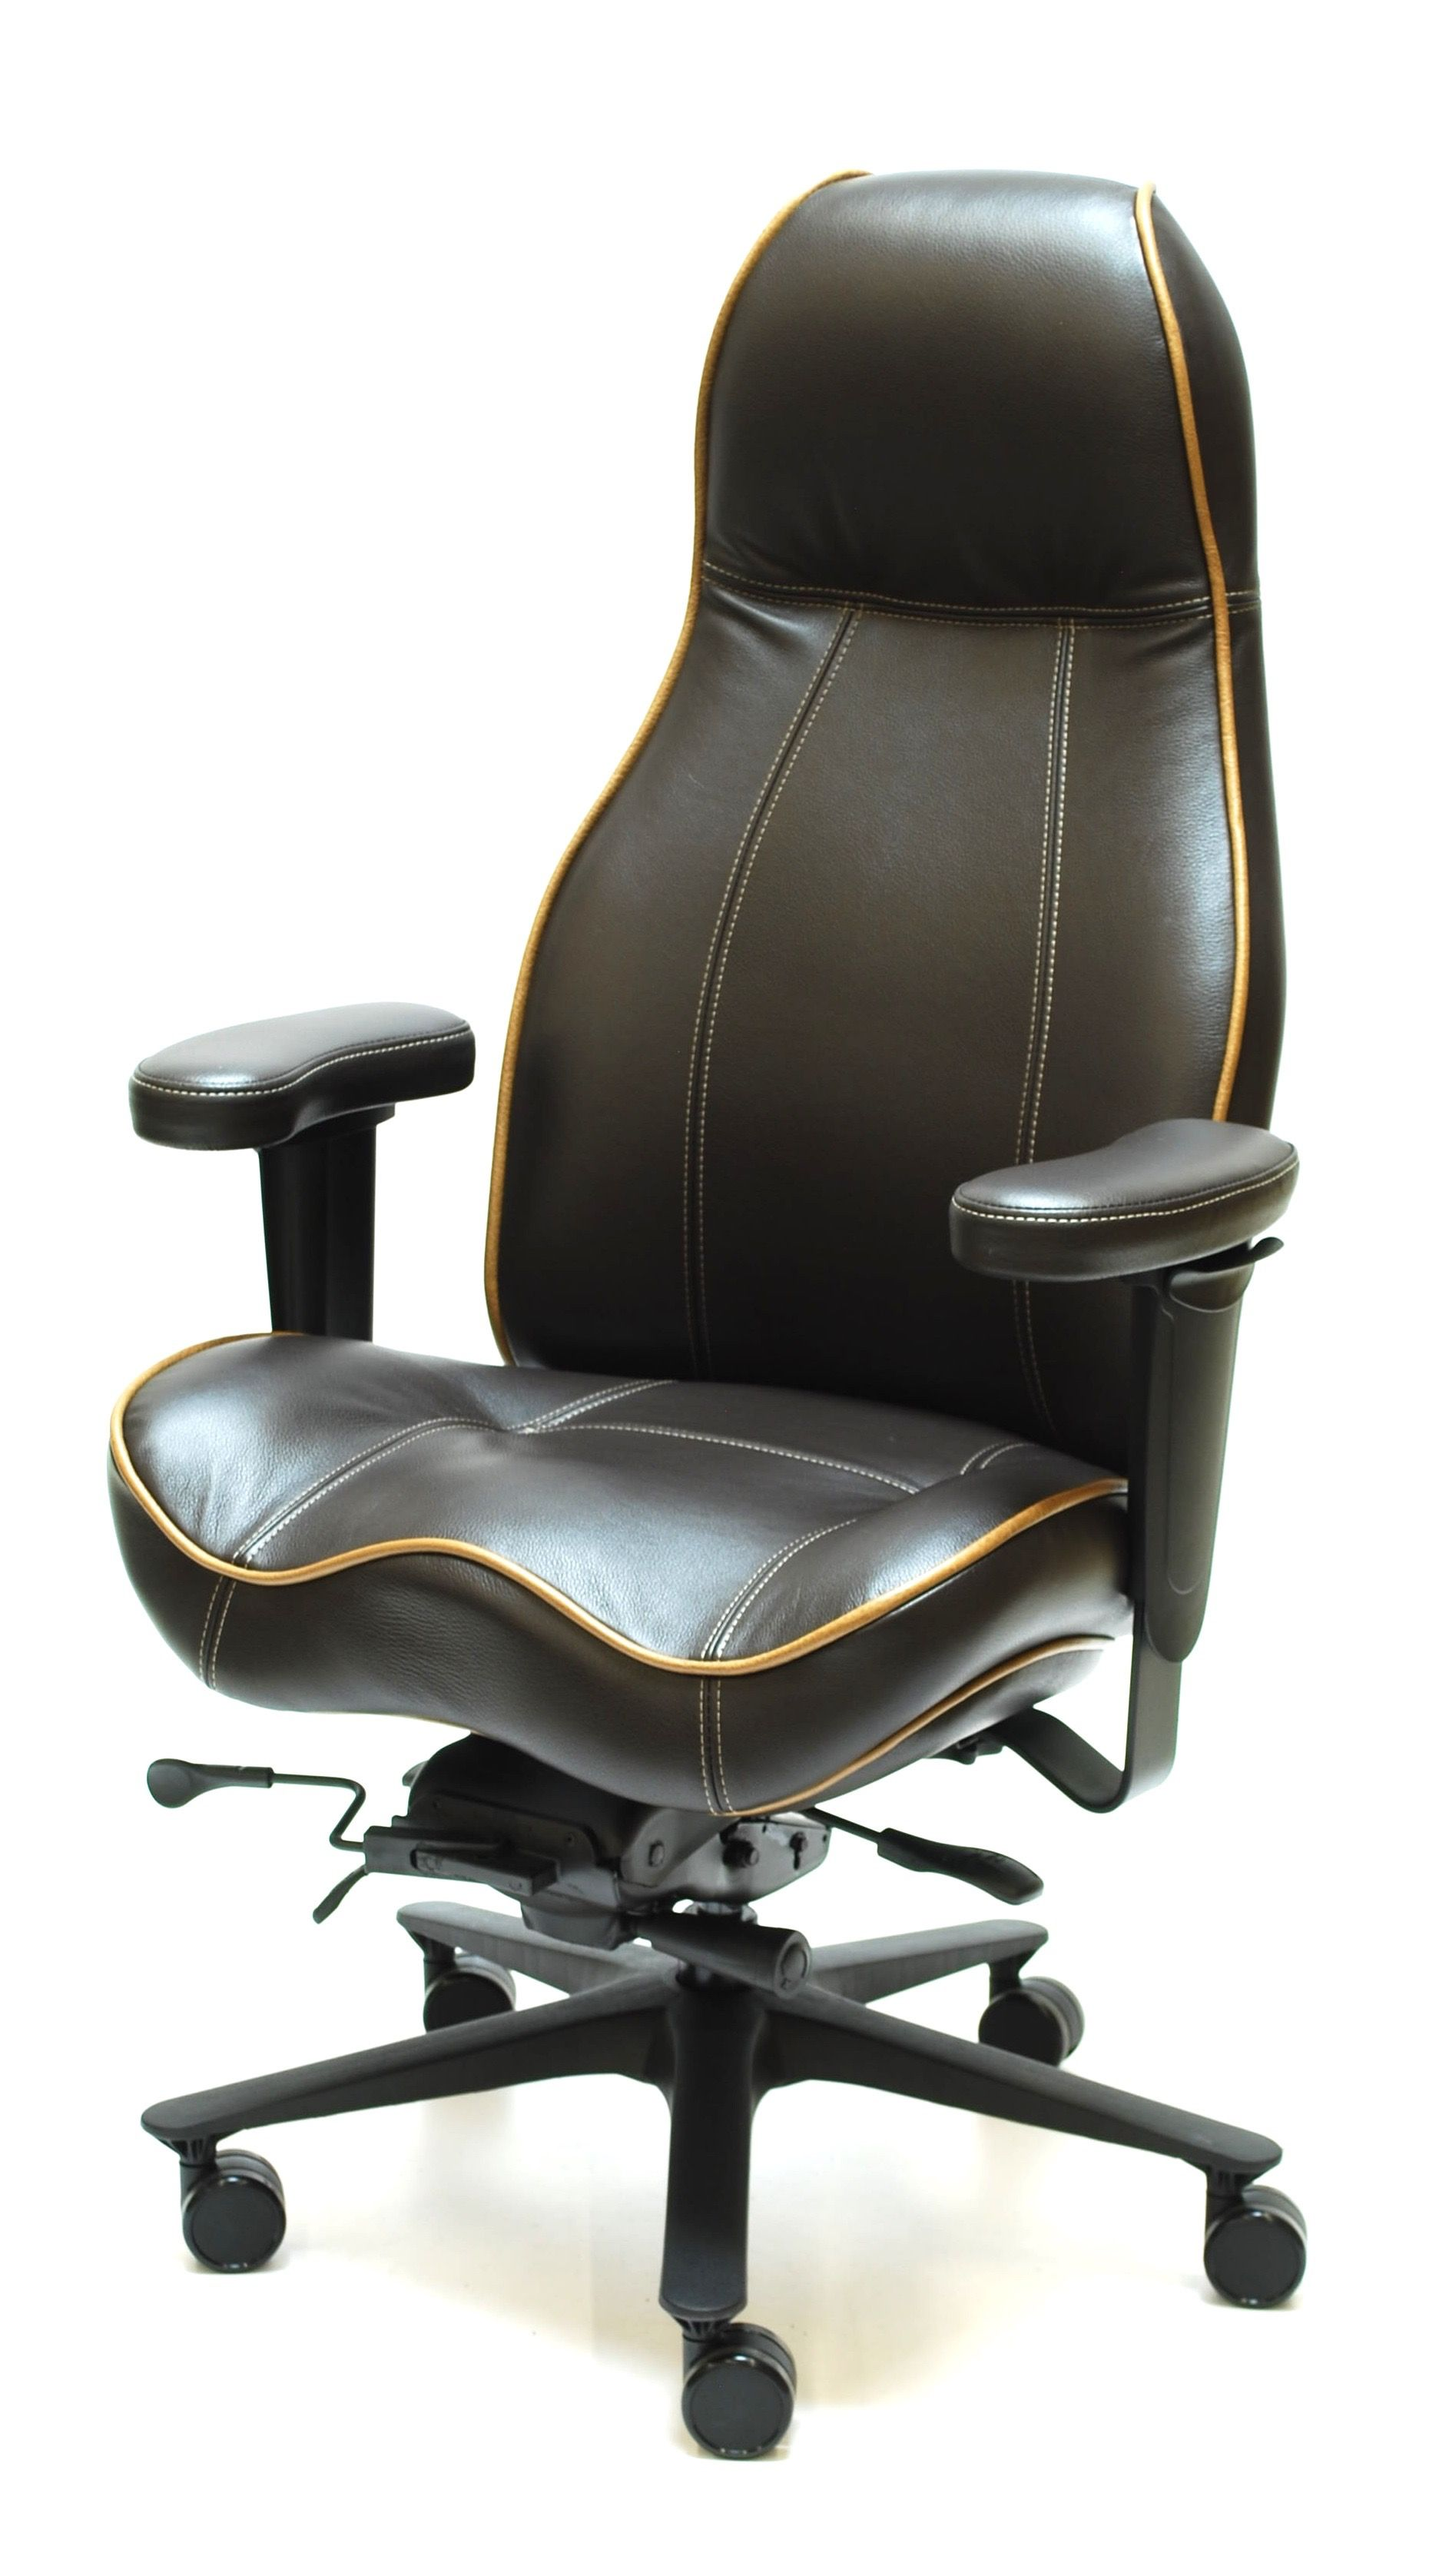 Lifeform 2390 Ultimate Hb Wtih Deep Contour Seat And Contrast Piping